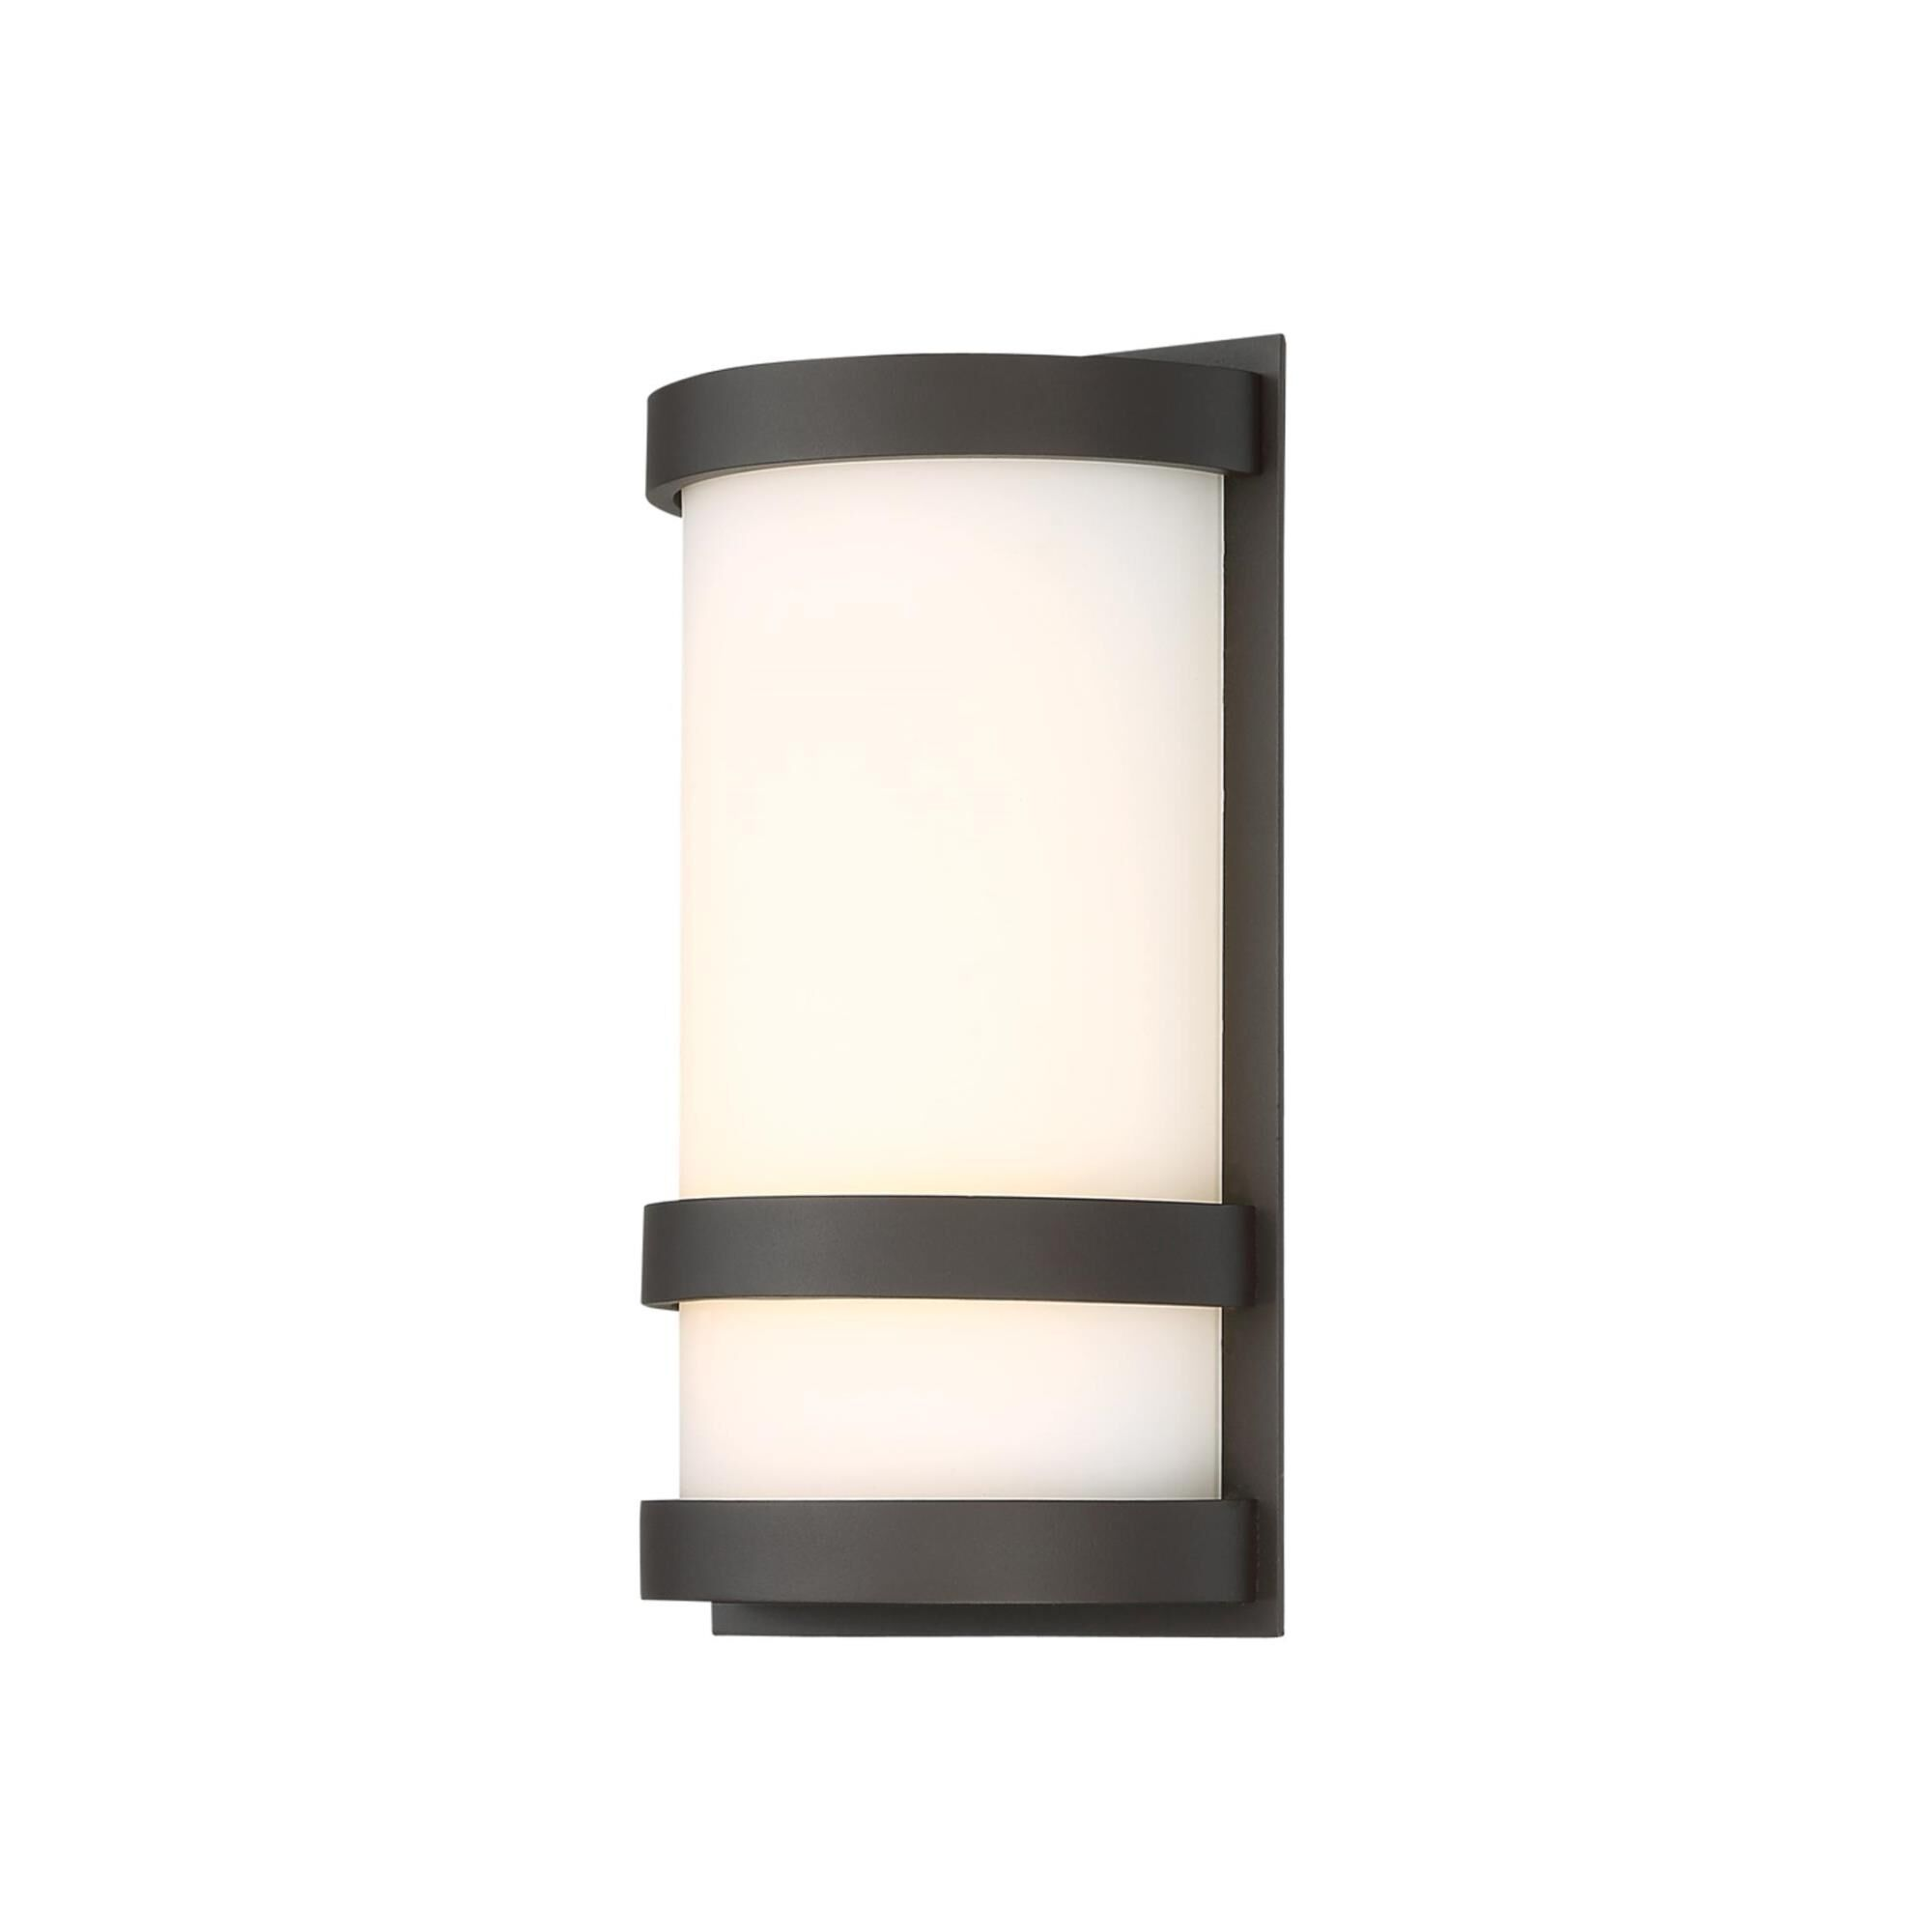 Latitude 10 Inch Tall 1 Light Led Outdoor Wall Light By Dweled